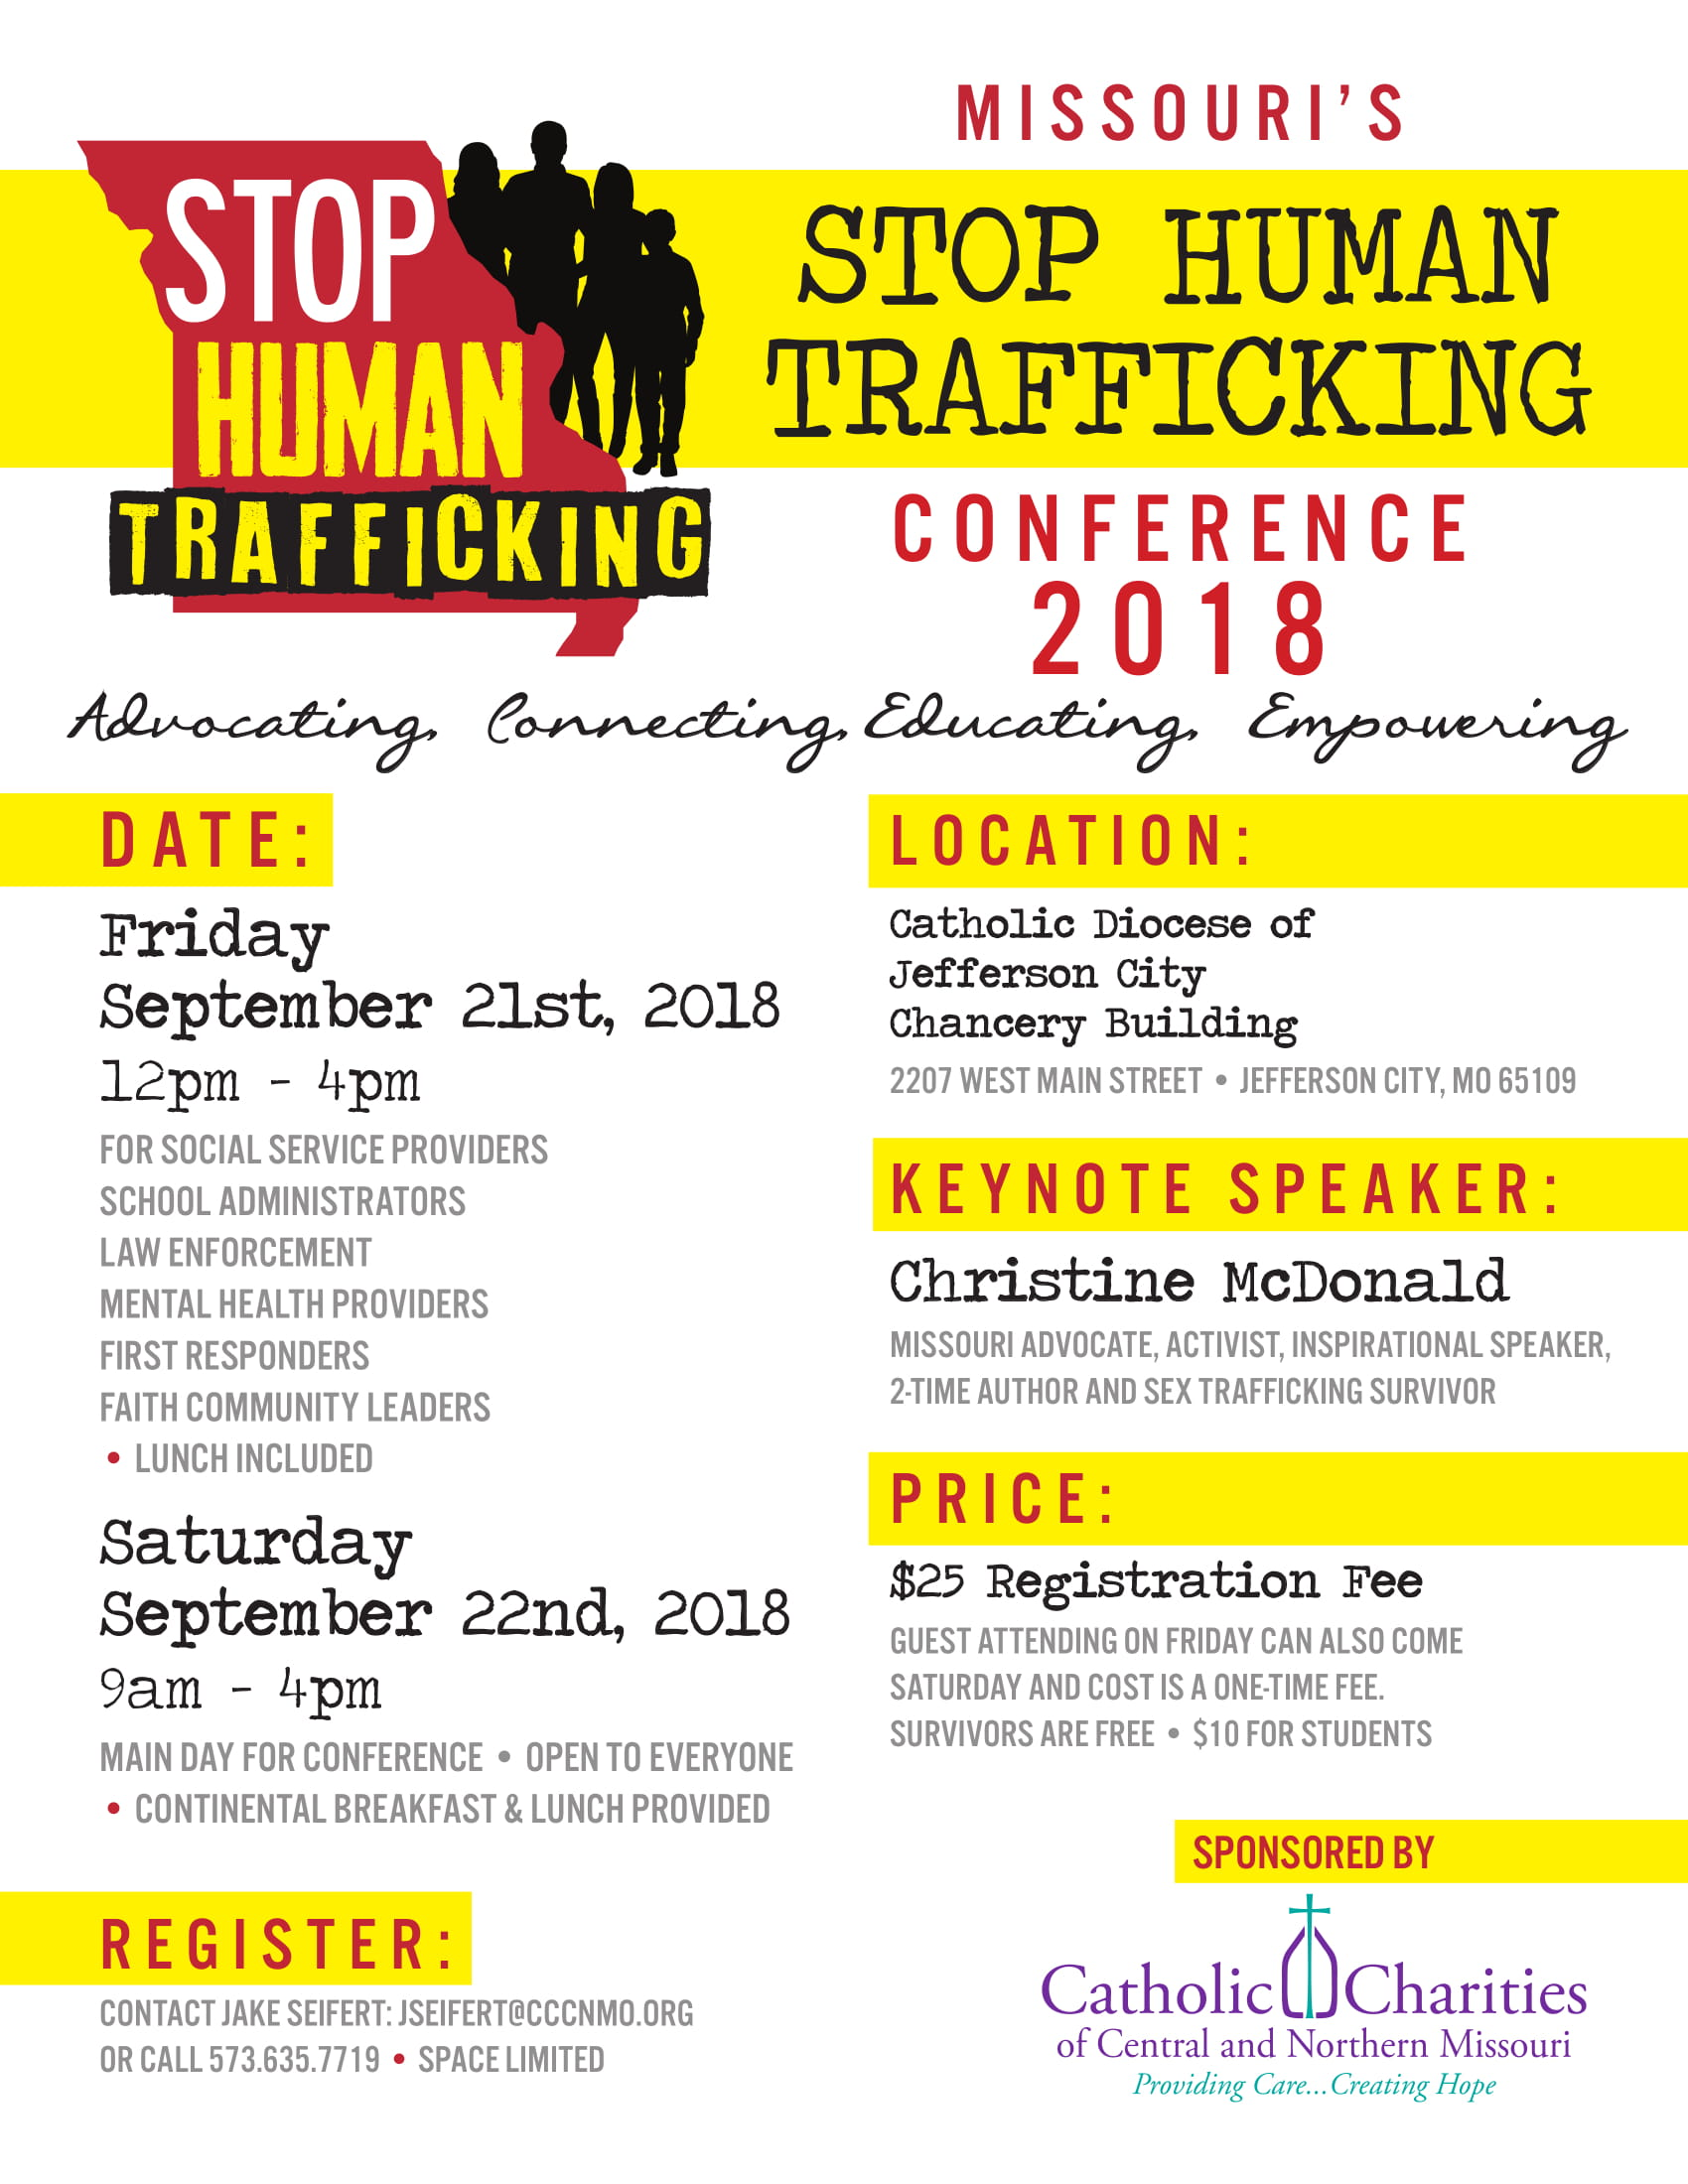 Anti-Human Trafficking | Catholic Charities of Central and Northern ...